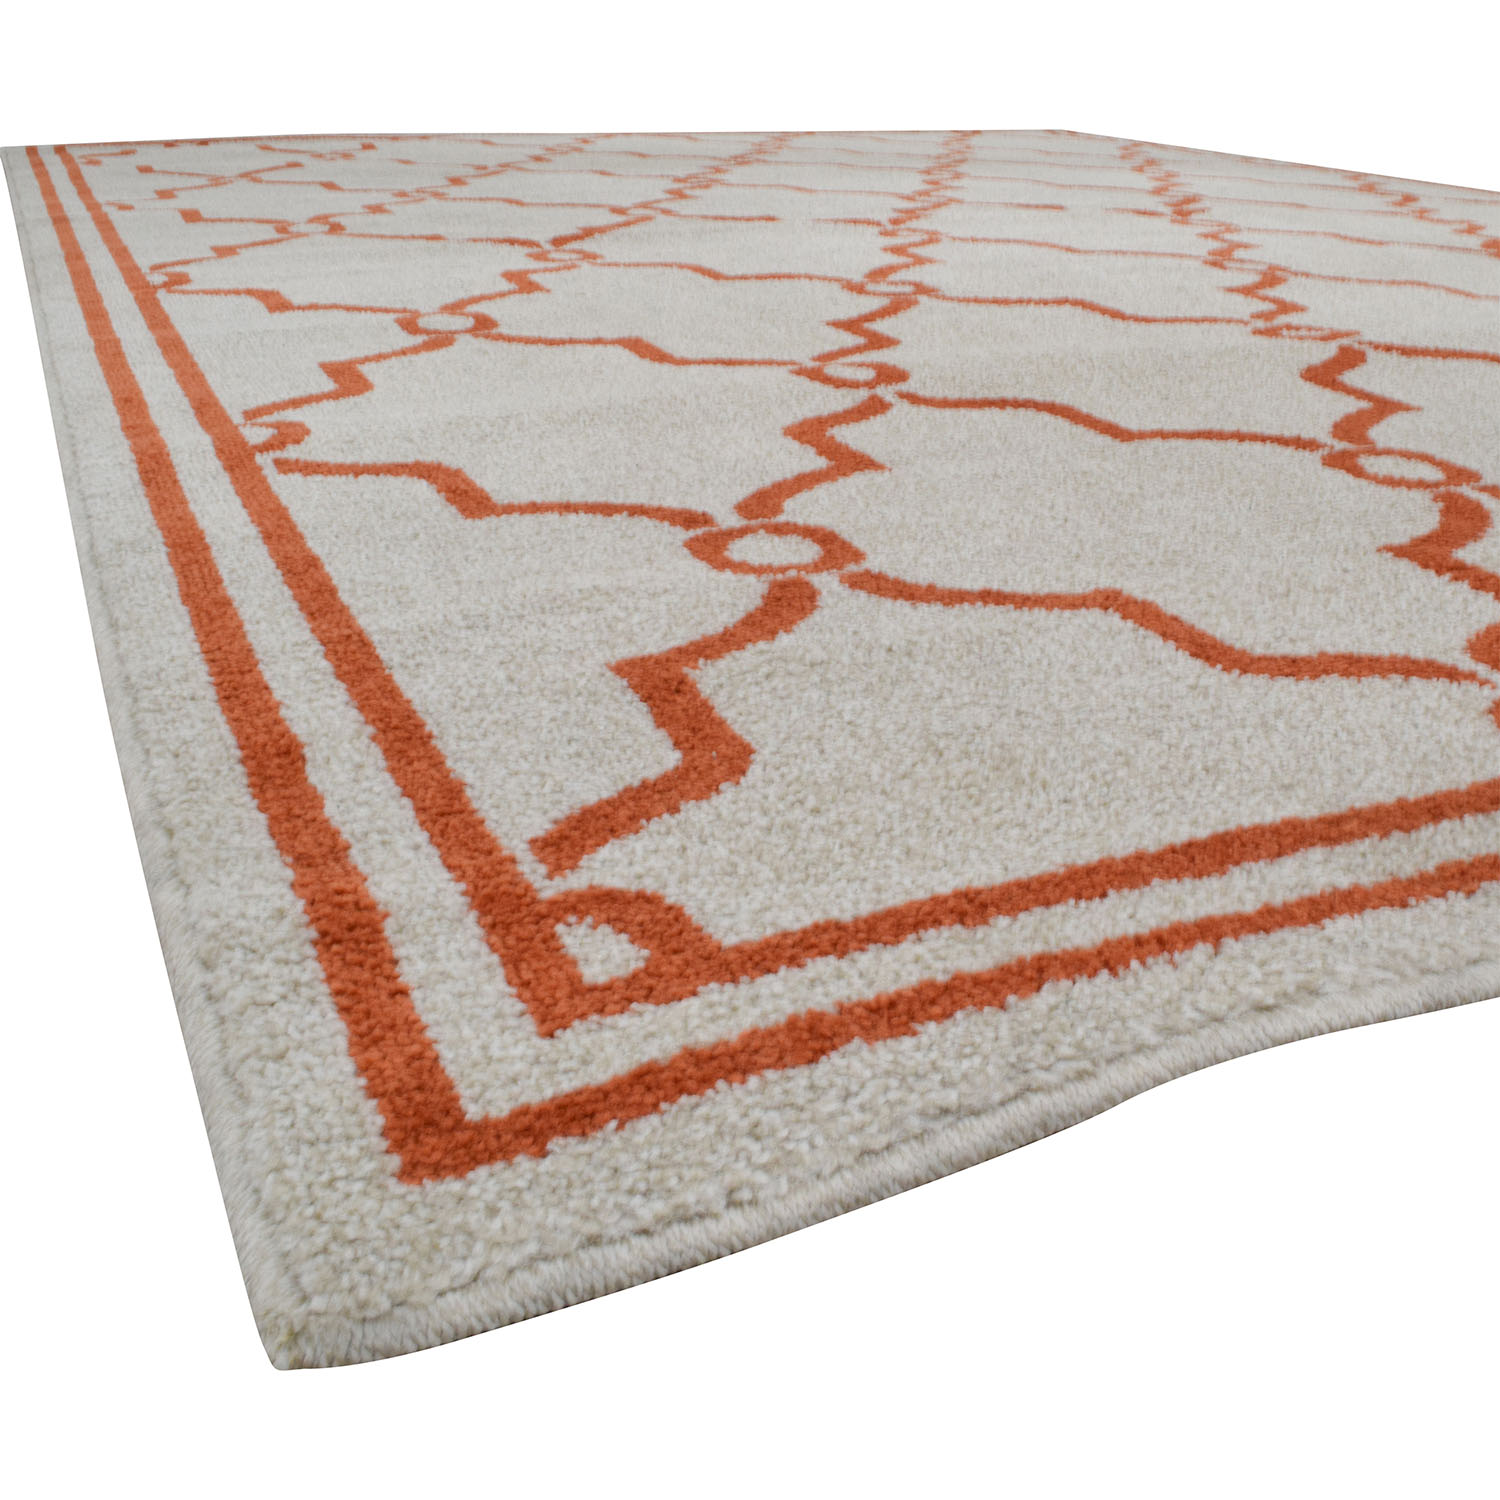 shop Safavieh Amherst Beige and Orange Indoor or Outdoor Rug Safavieh Rugs